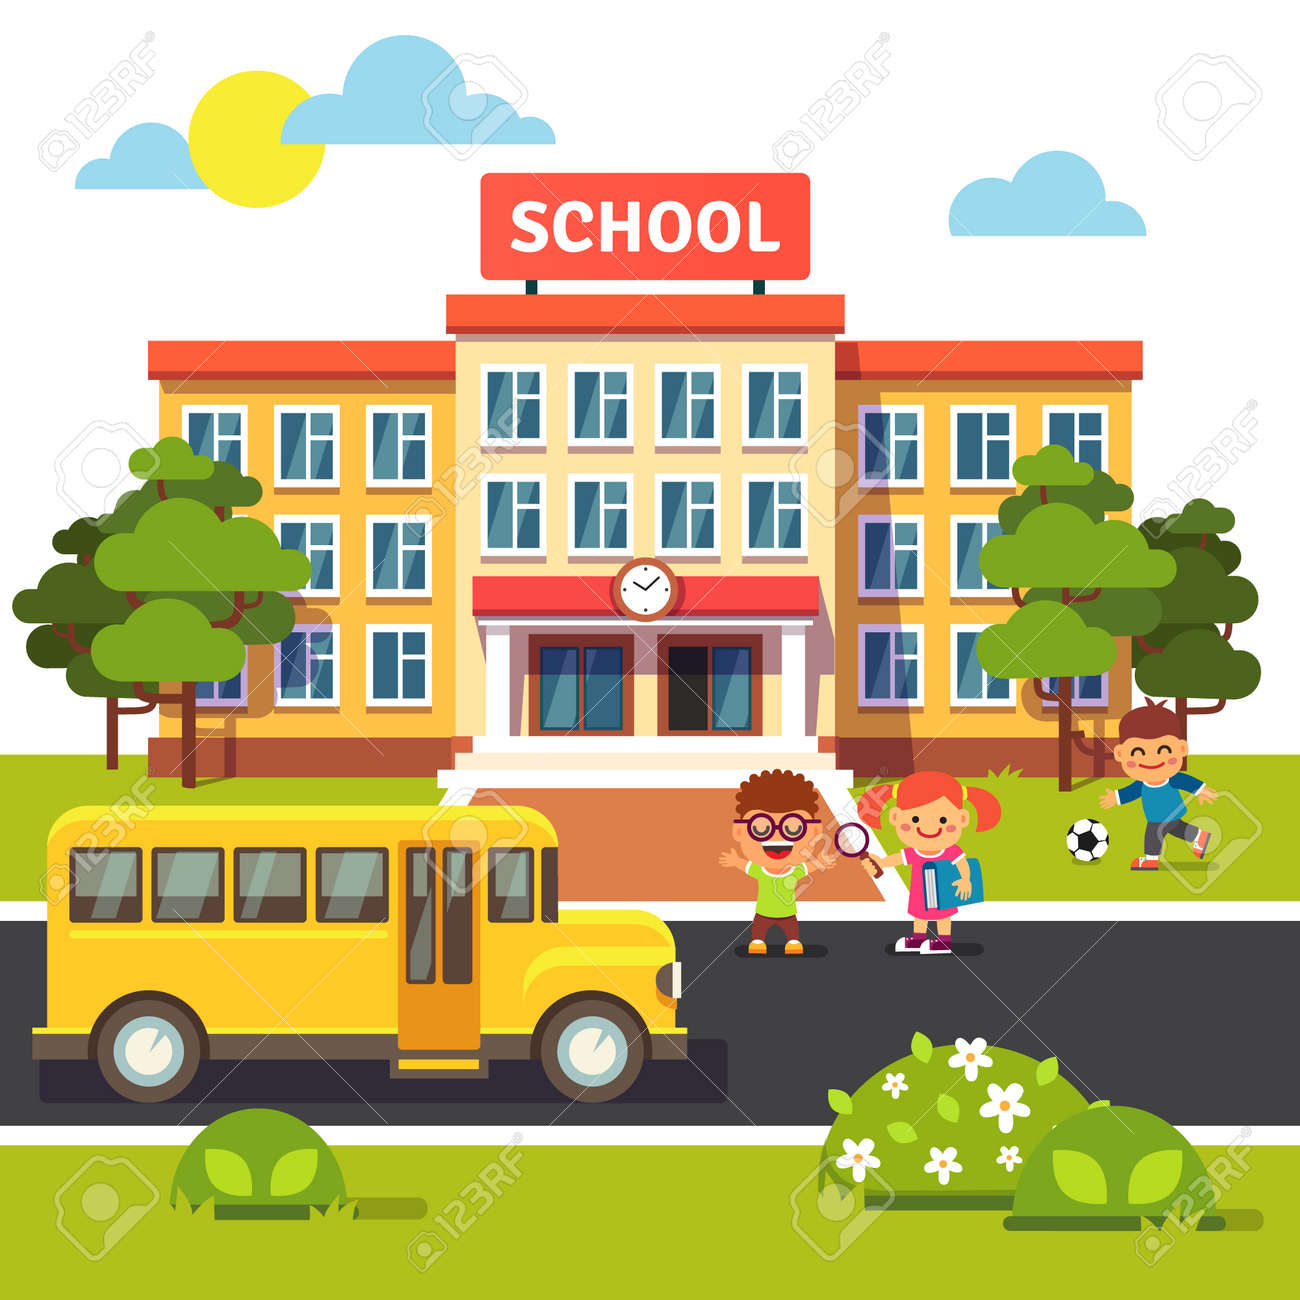 School building school building bus and front yard with students children flat style